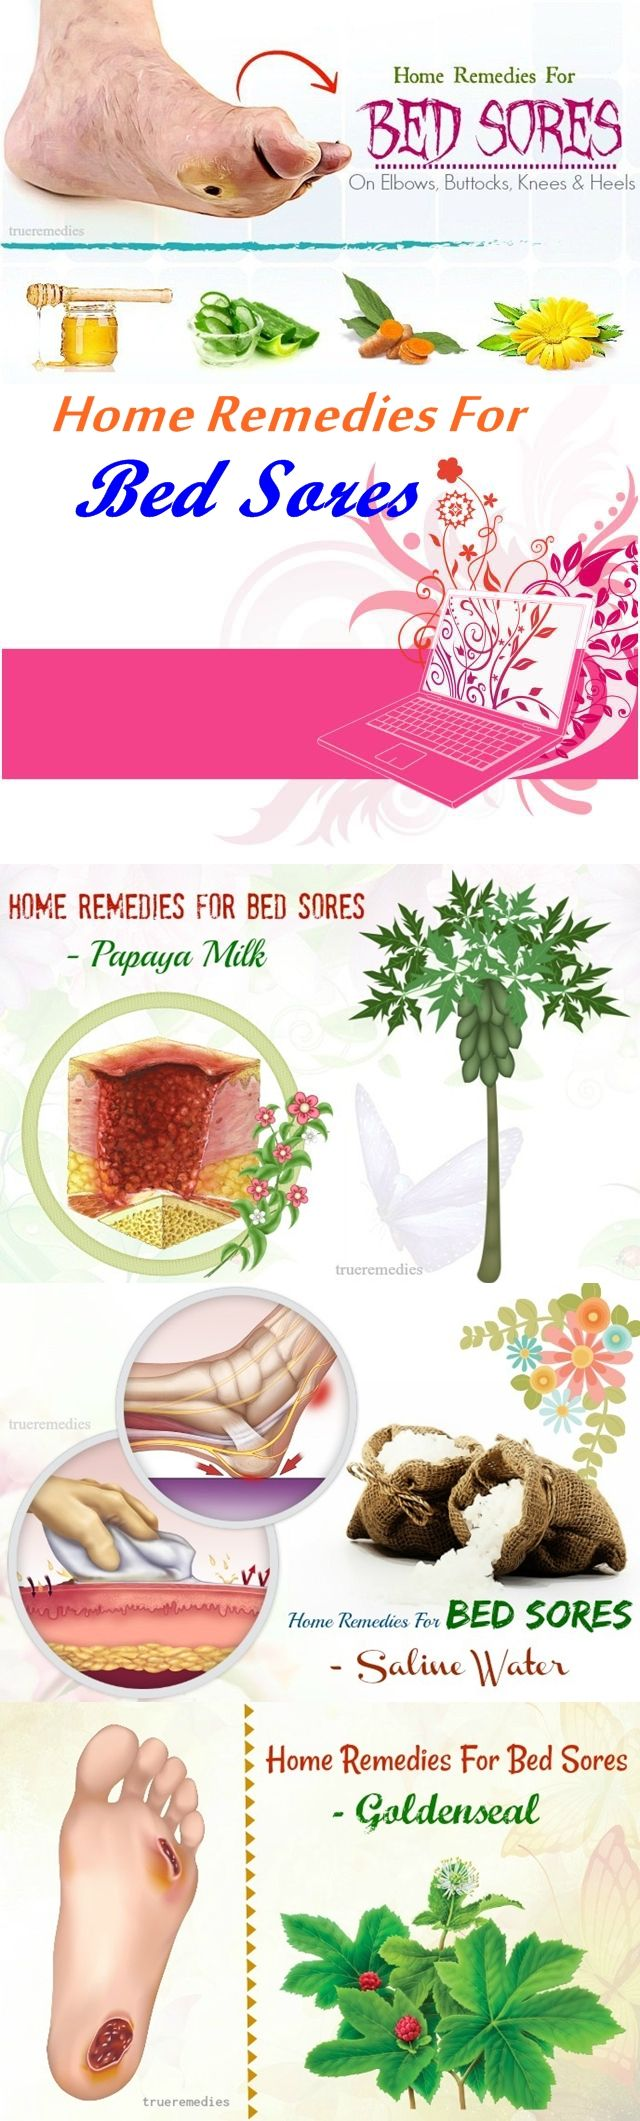 16 Home Remedies For Bed Sores On Elbows, Buttocks, Knees